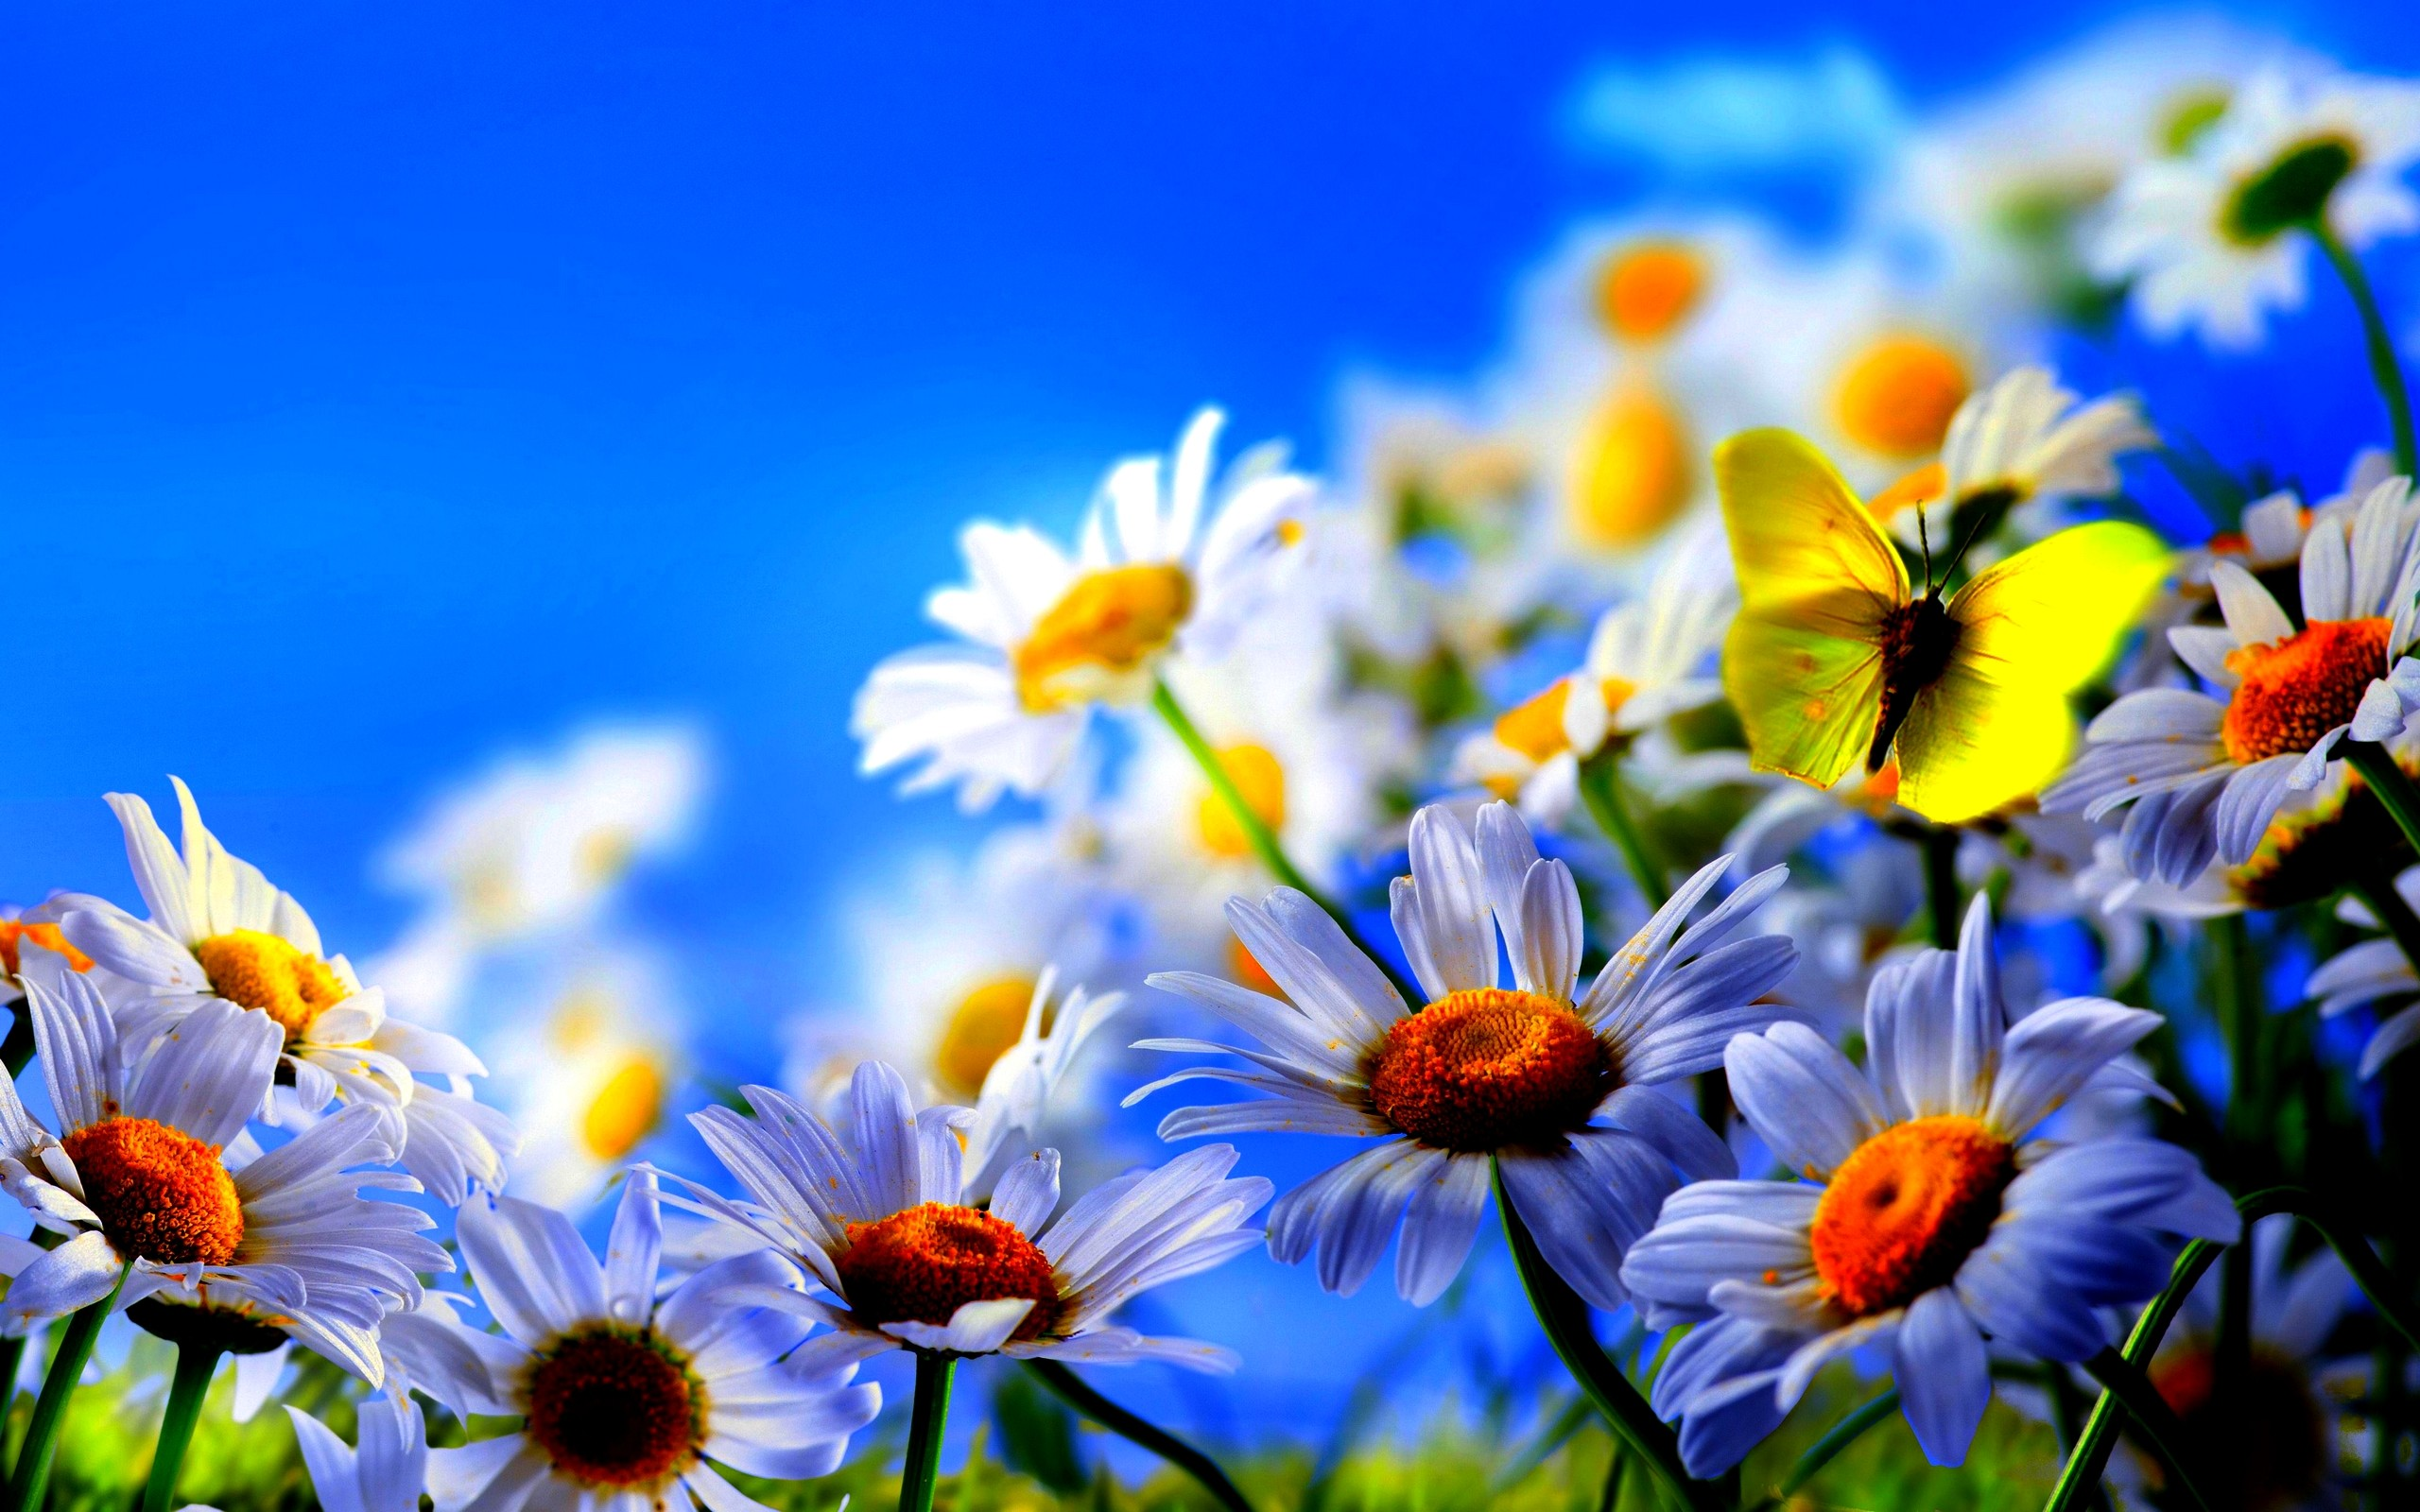 Desktop Images Spring Flowers Flowers Healthy